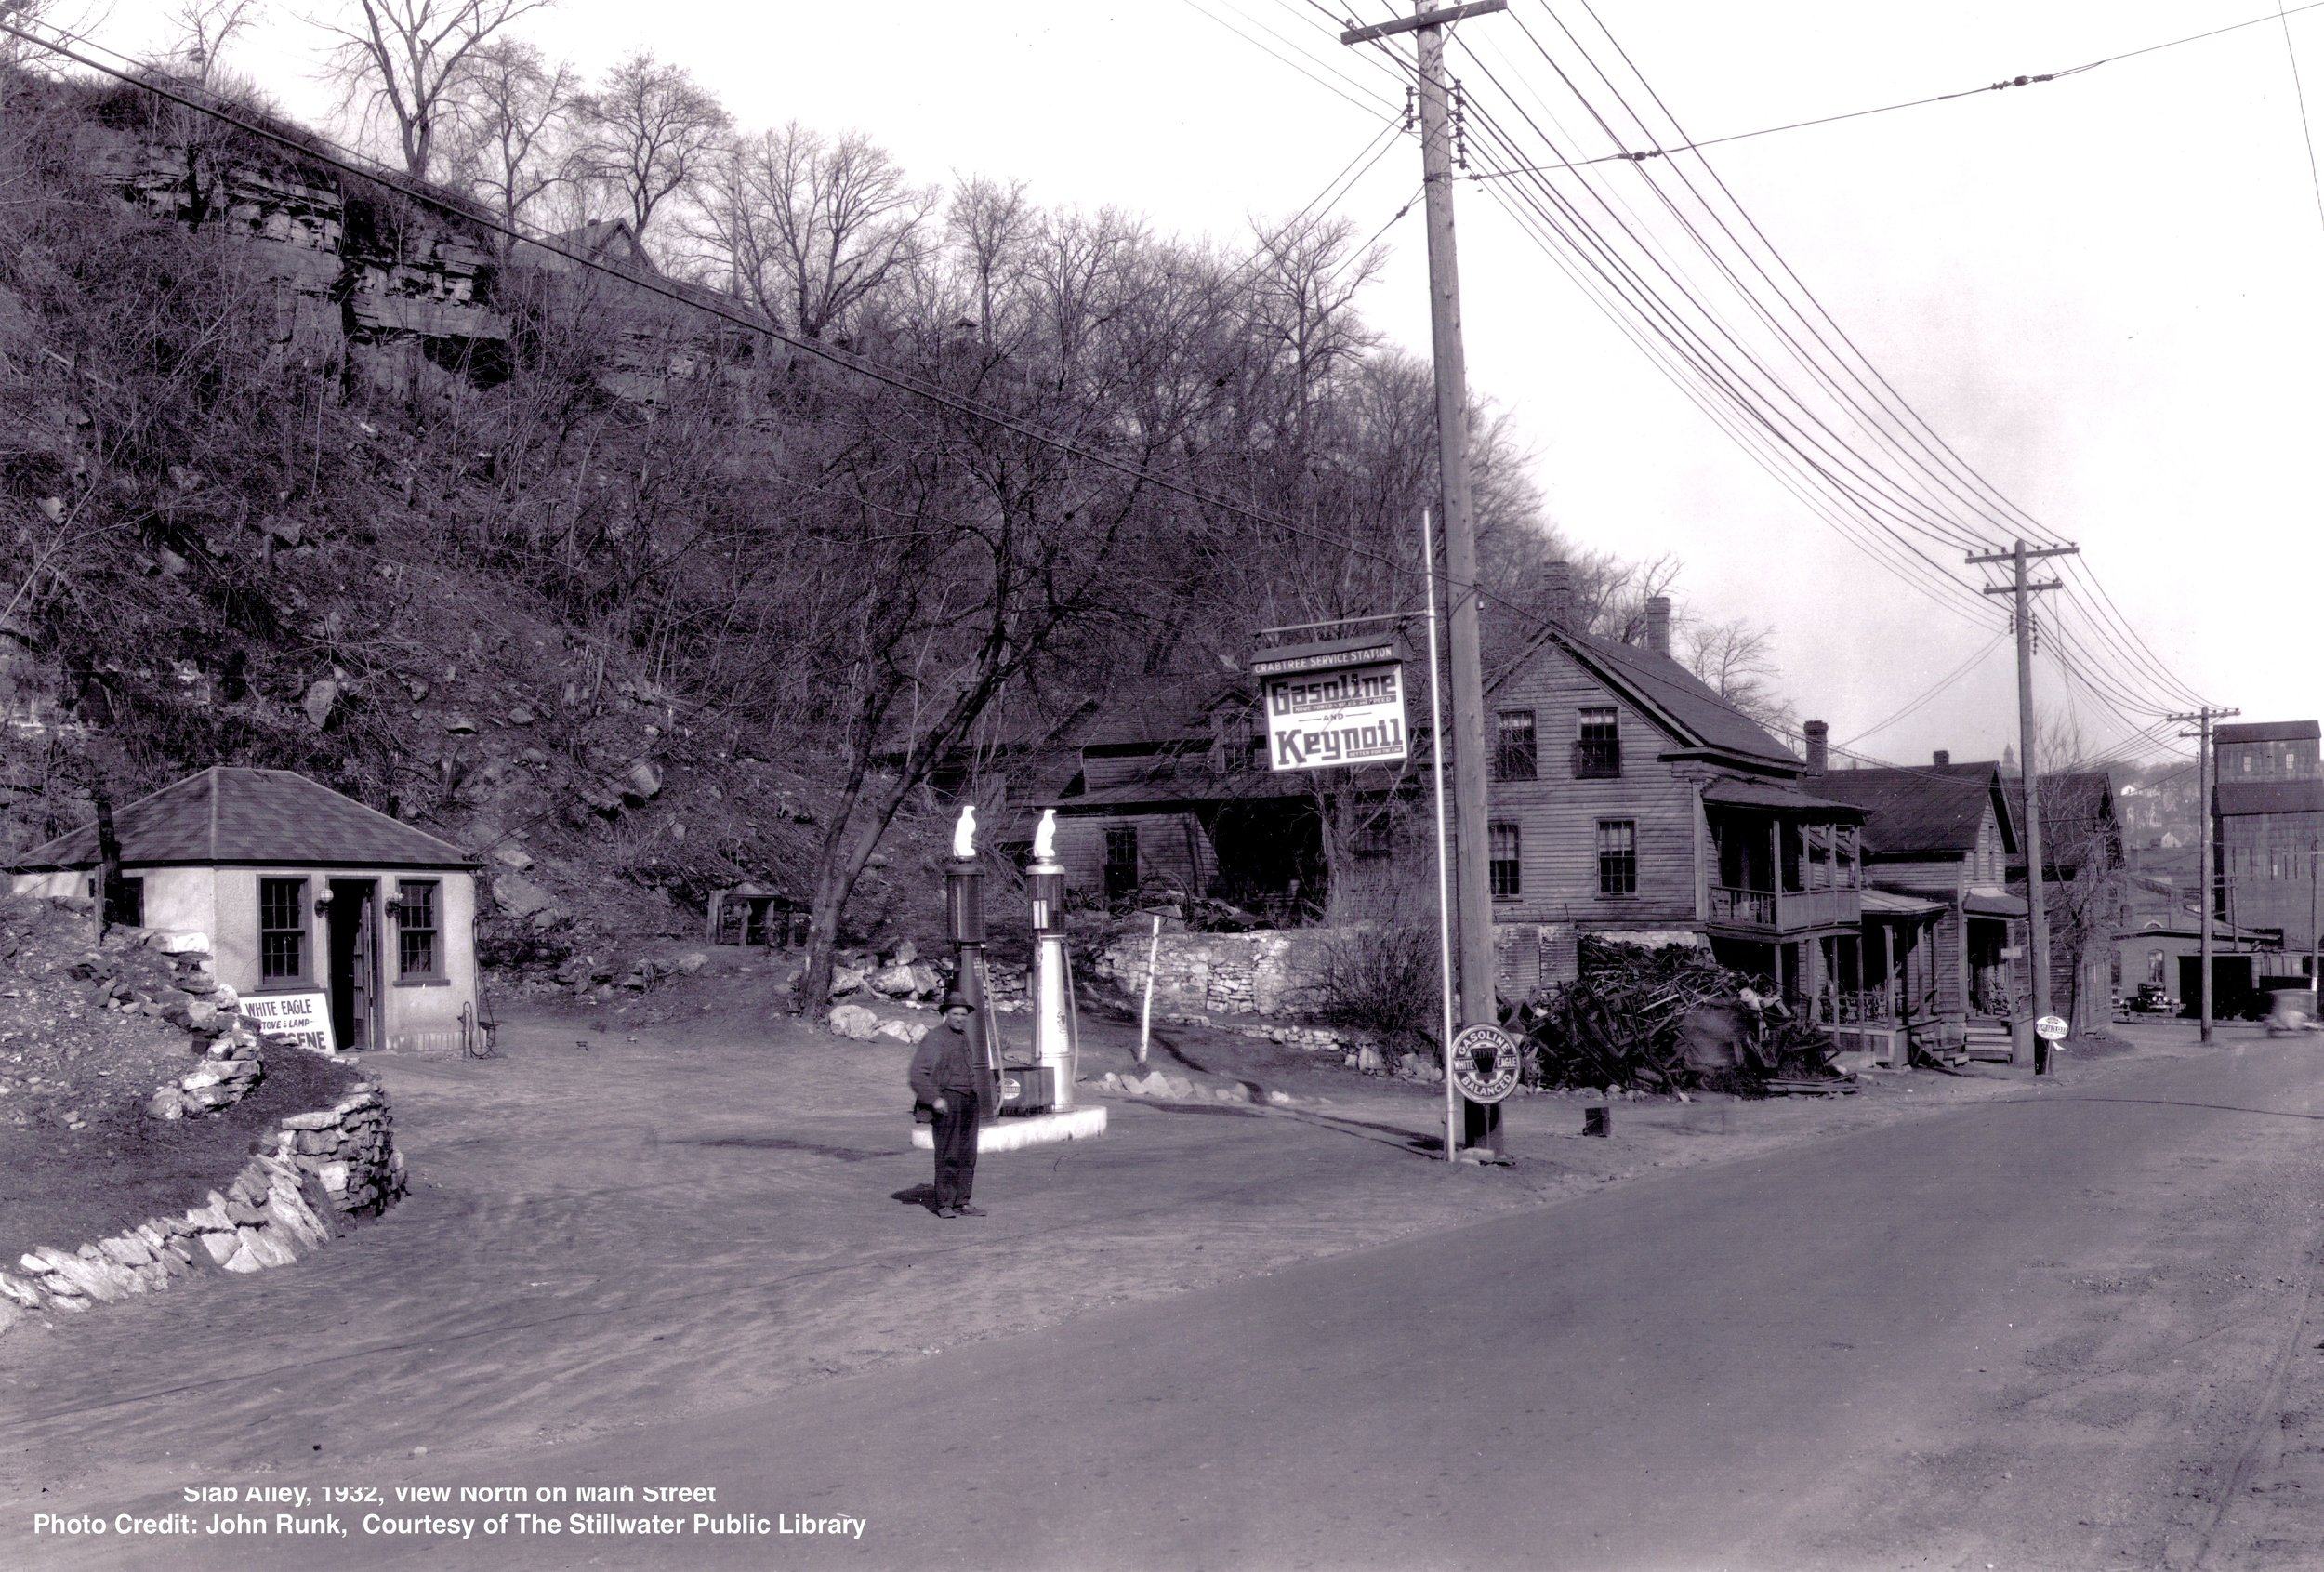 This was the location of the Crabtree Service Station in Slab Alley. The year was 1932. The view is toward the north. In the distance you can see the Commander Grain Elevator. It is the only building left in this photo.